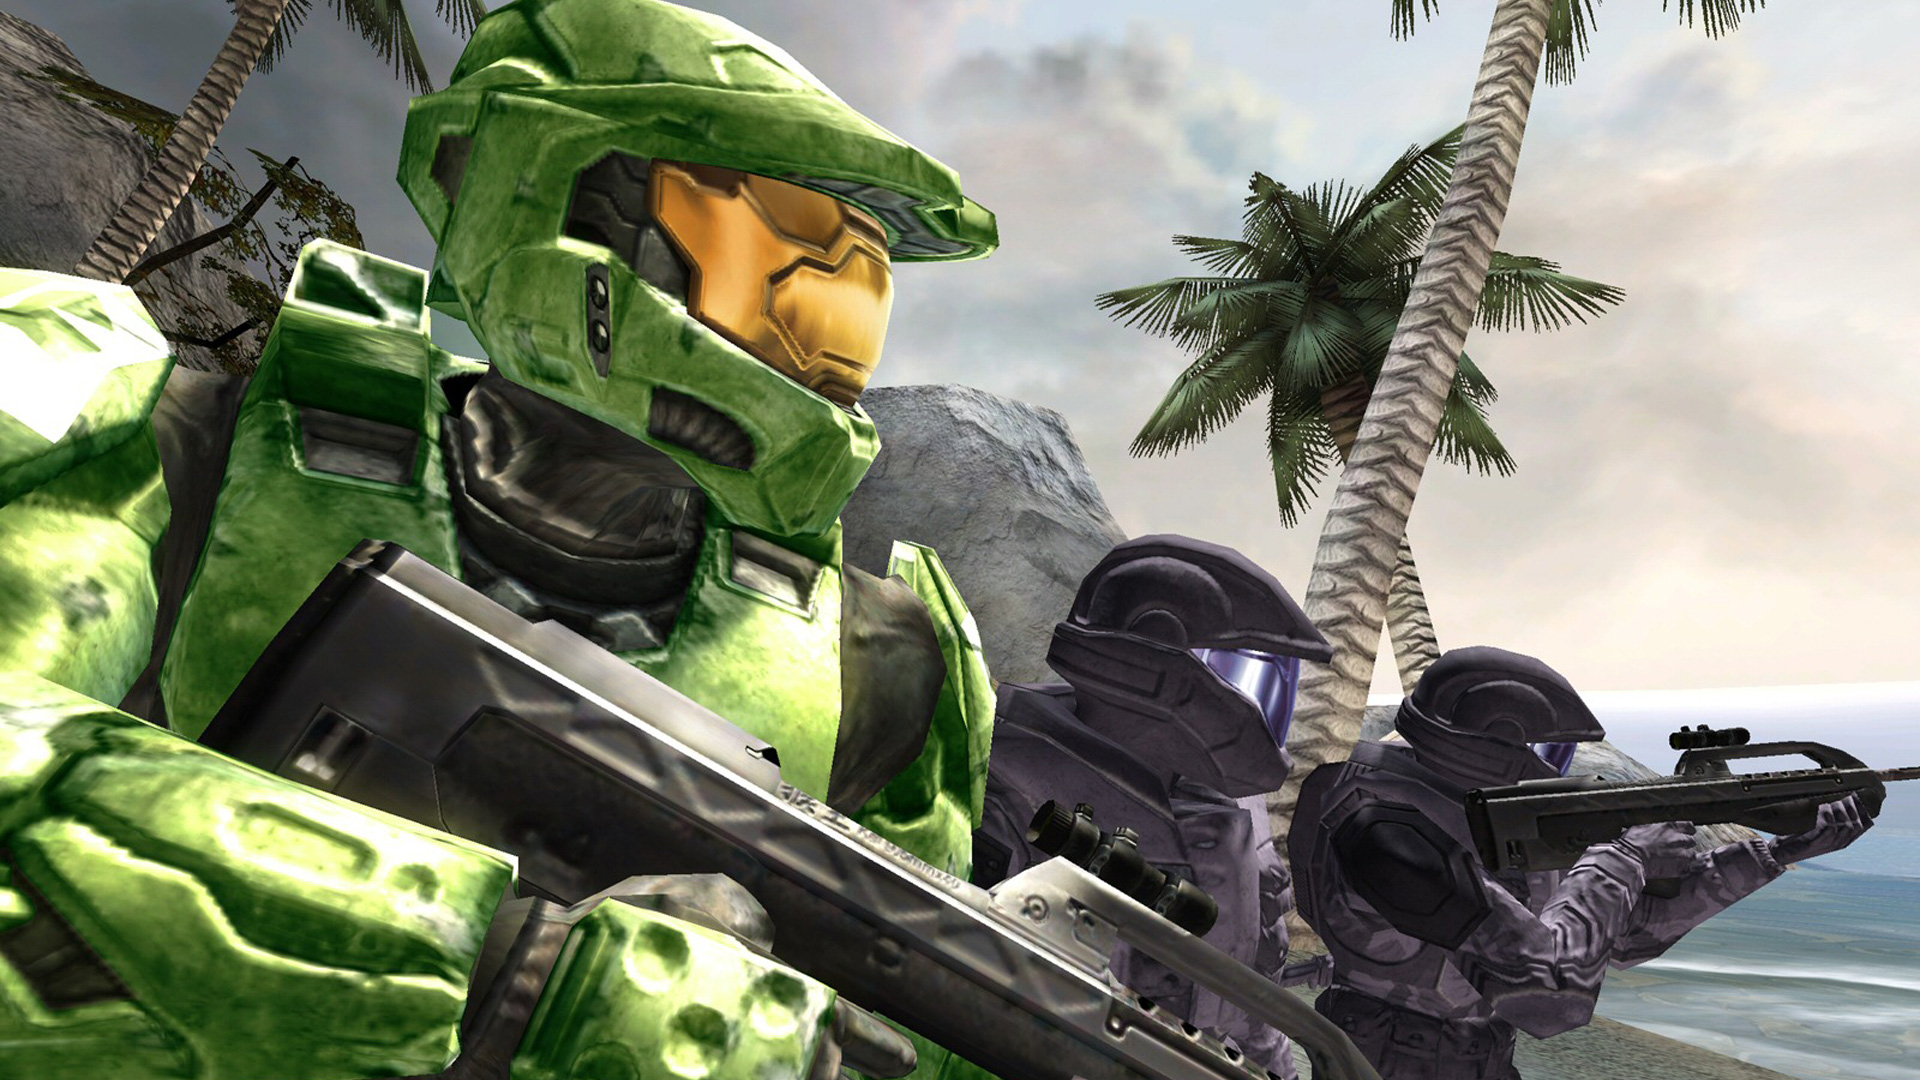 Free Halo 2 Wallpaper in 1920x1080